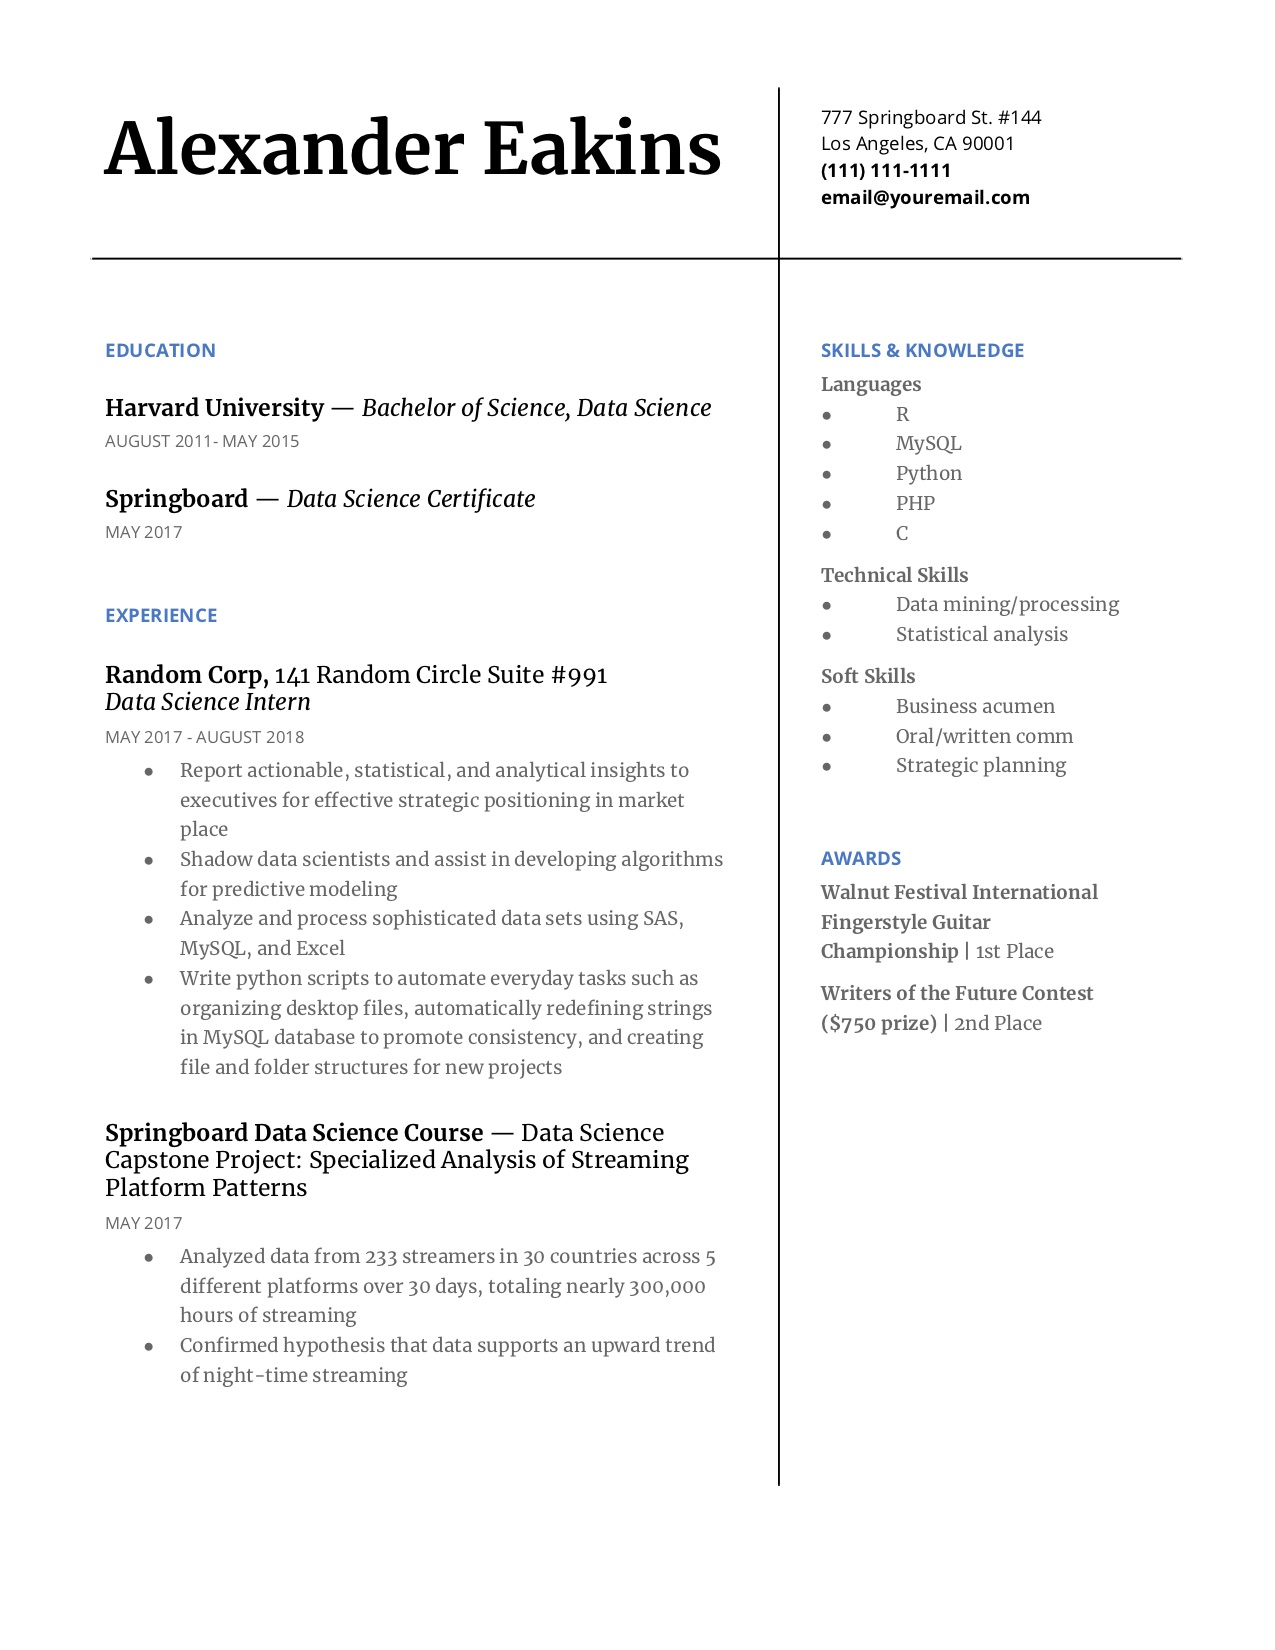 step guide to make your data science resume pop springboard blog good machine learning Resume Good Machine Learning Projects For Resume